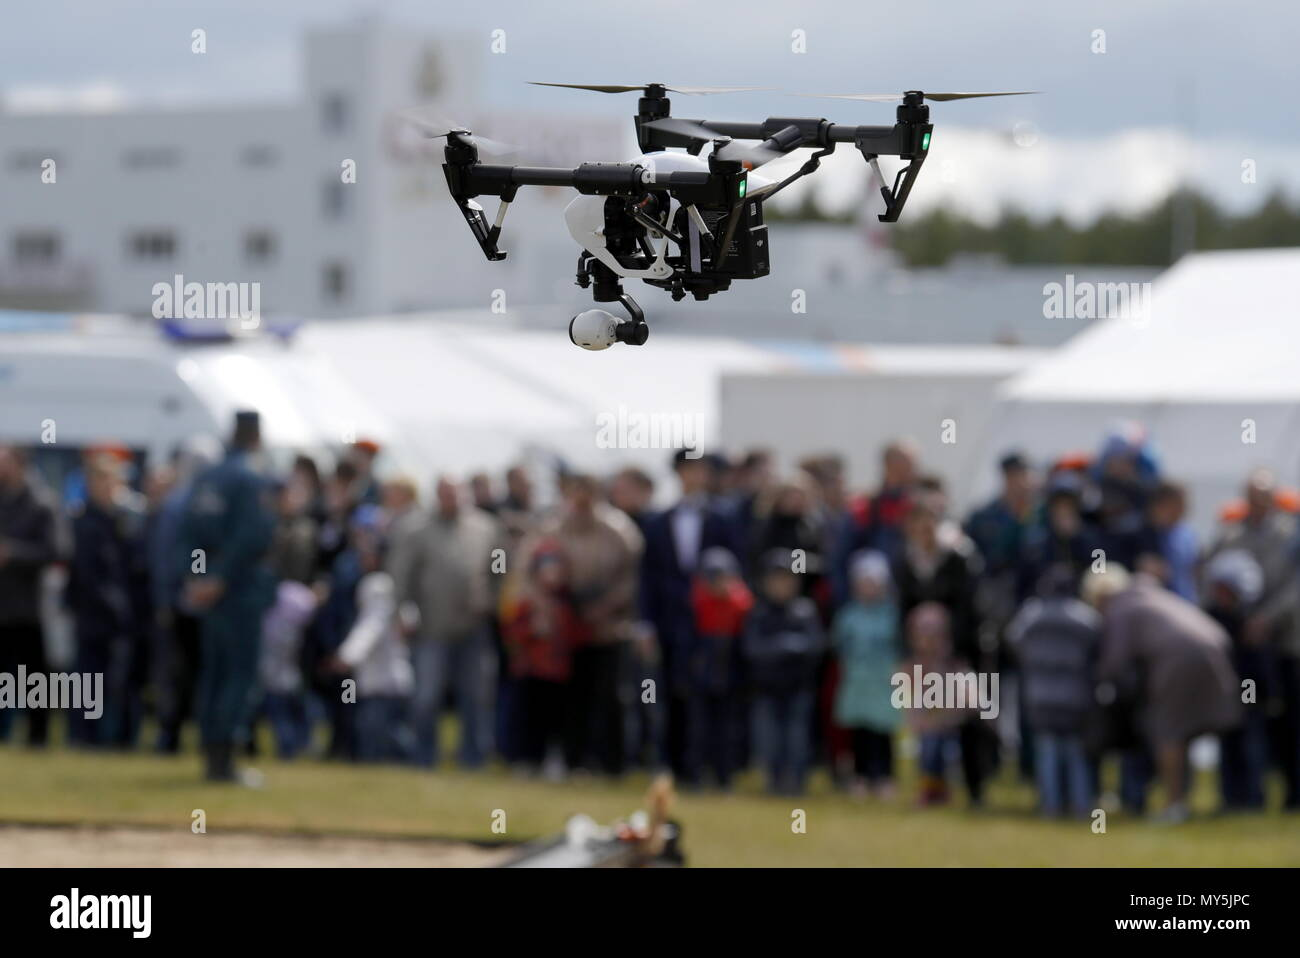 Moscow, Russia. 06th June, 2018. MOSCOW REGION, RUSSIA - JUNE 6, 2018: An emergency service drone in a demonstration flight at the 2018 Complex Safety, an international show and exhibition of safety and security equipment, in Noginsk, Moscow Region; the event was organised by the Russian Ministry of the Interior, and the Russian Ministry of Civil Defence, Emergencies, and Disaster Relief. Mikhail Japaridze/TASS Credit: ITAR-TASS News Agency/Alamy Live News - Stock Image